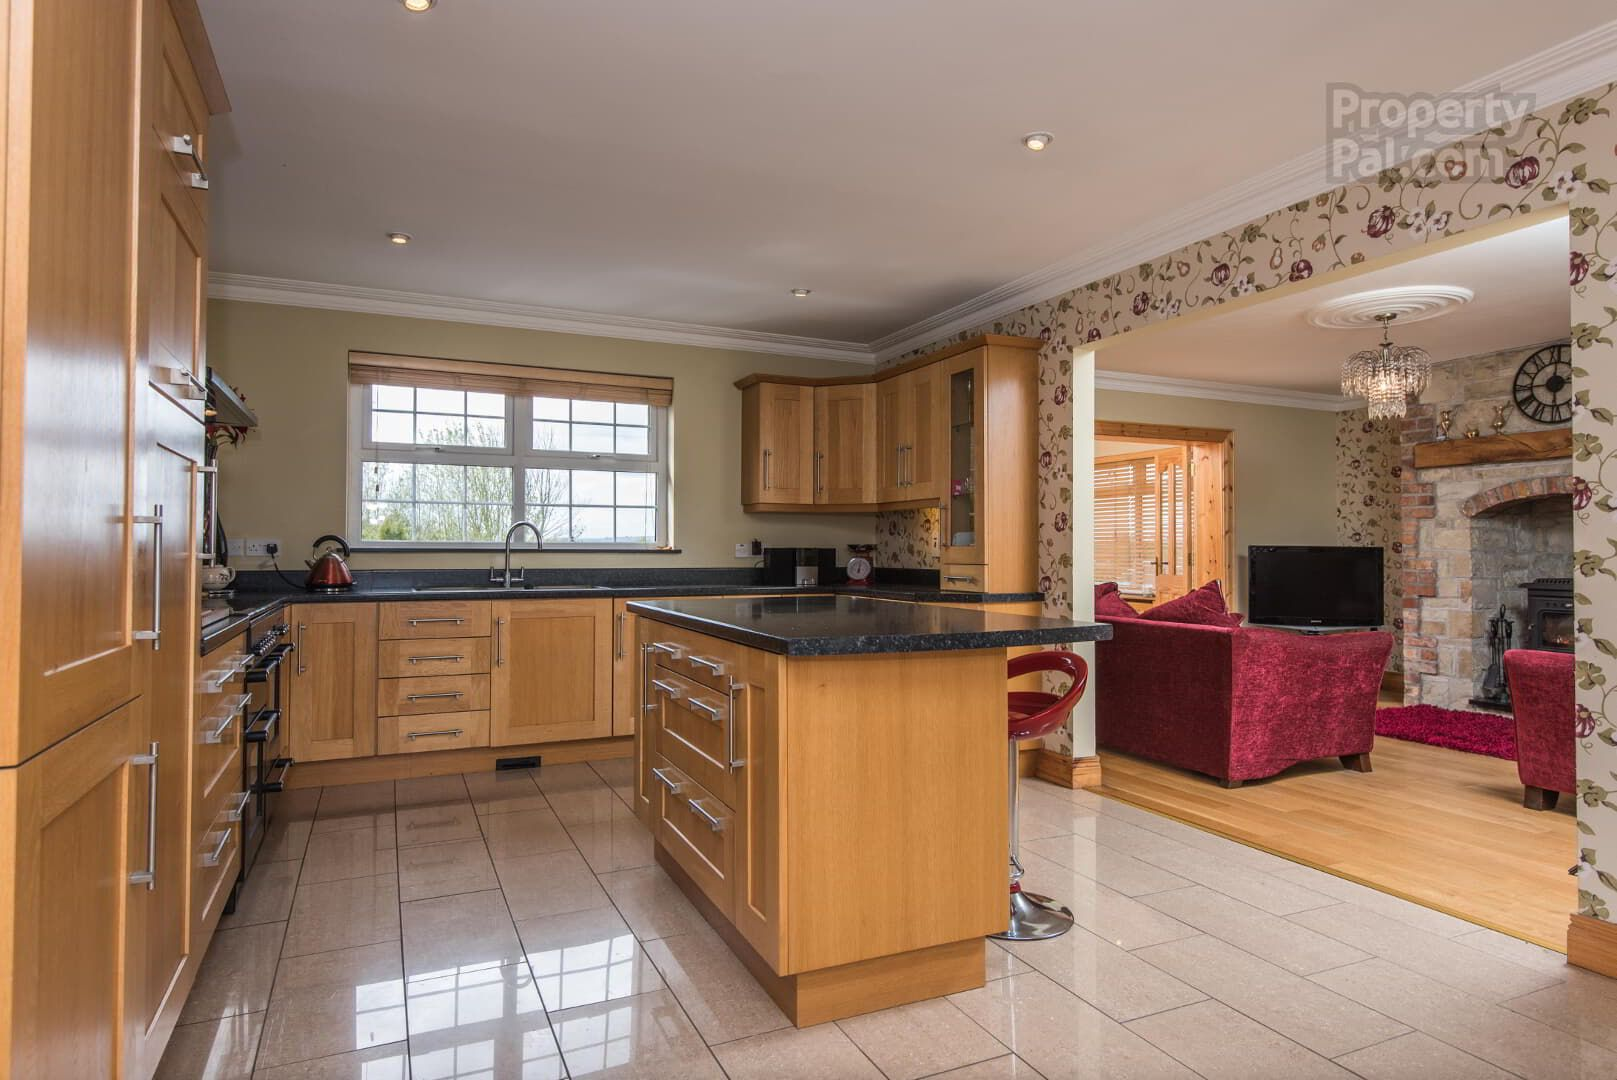 57A Lisnagowan Road, Dungannon Kitchen, Property for